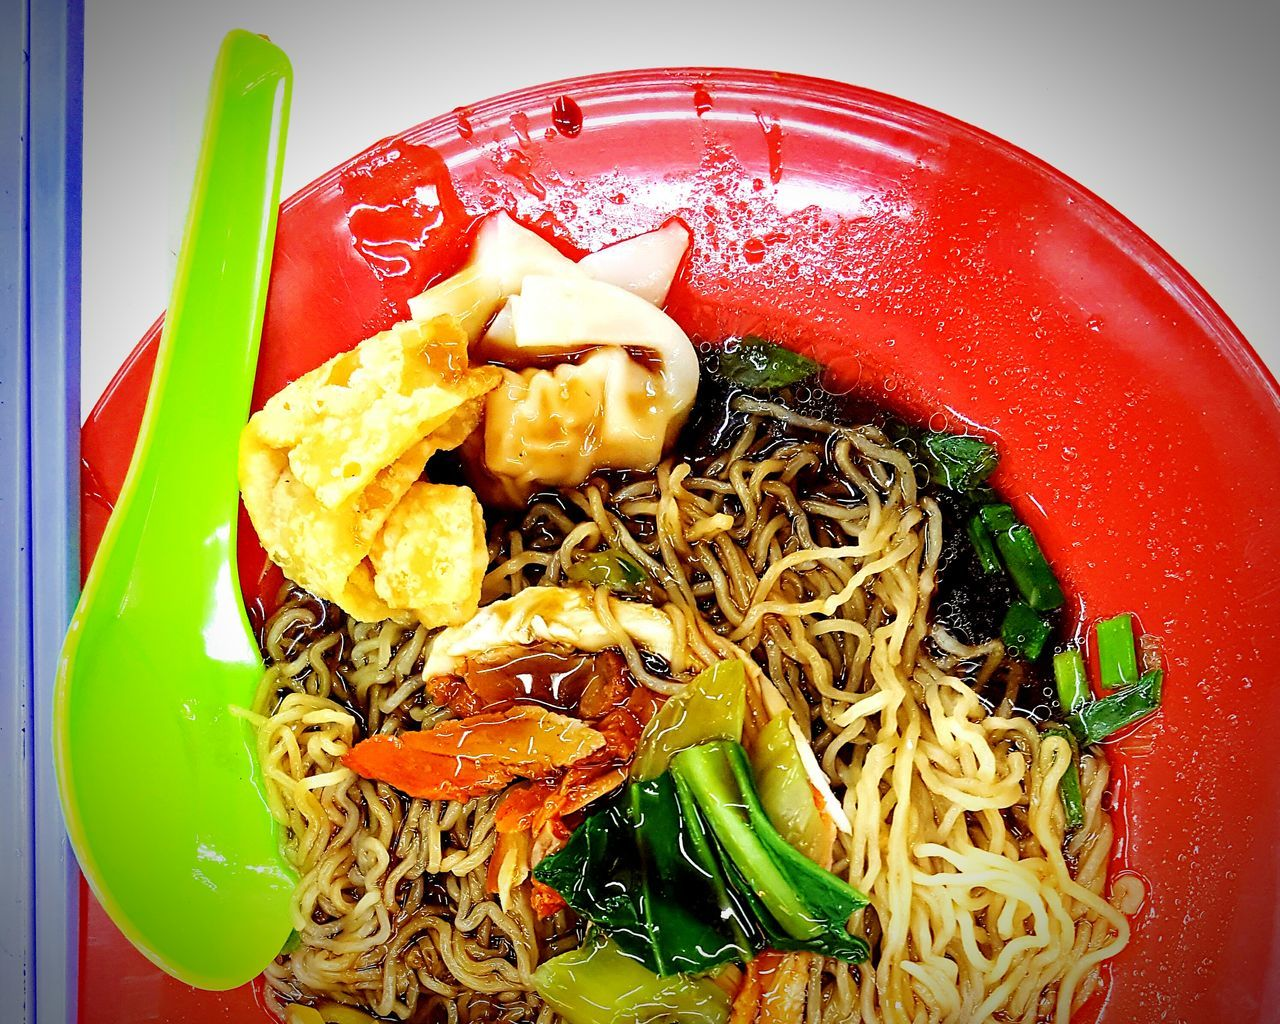 Wanton noodle . Penang hawker food Showcase July My Point Of View Eyeem Photography My Capture  Hello World The Week Of Eyeem Check This Out Fresh On Eyeem  No PeopleWanton Noodles Green Chillies Char Siew Dumplings Veggies Hawker Food Penang Malaysia Yummy In My Tummy Dinner EyeEm Food Lovers Colour Of Life